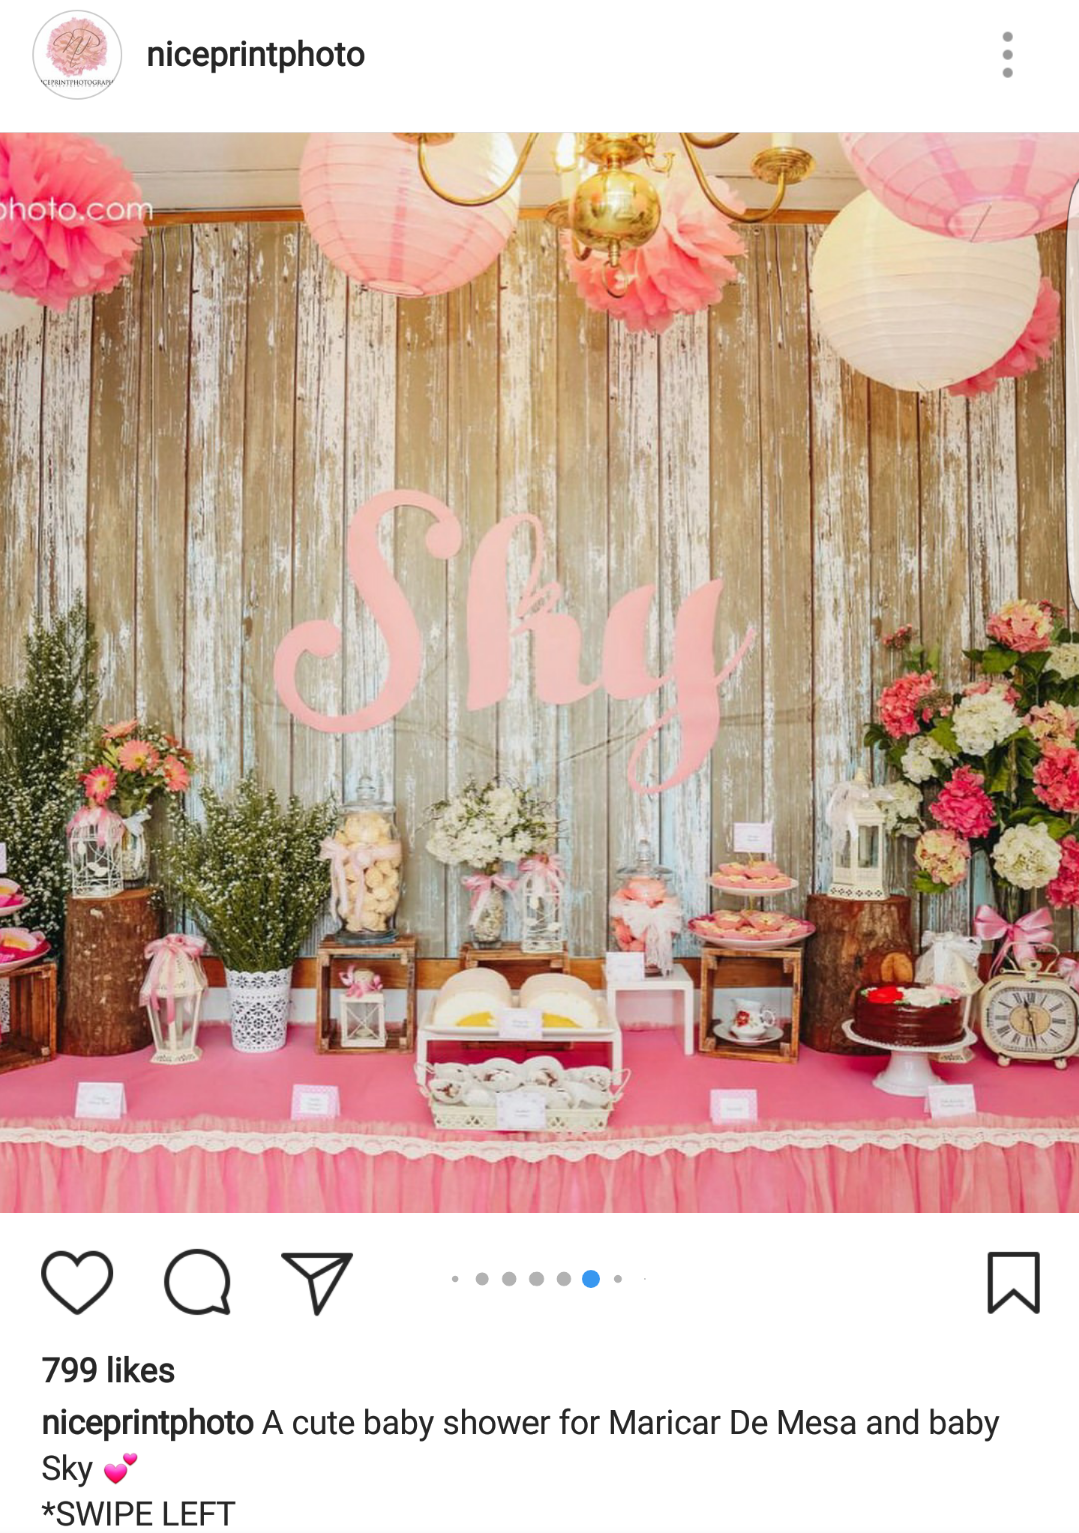 Fashion PULIS: Insta Scoop: Baby Shower Held for Maricar ...